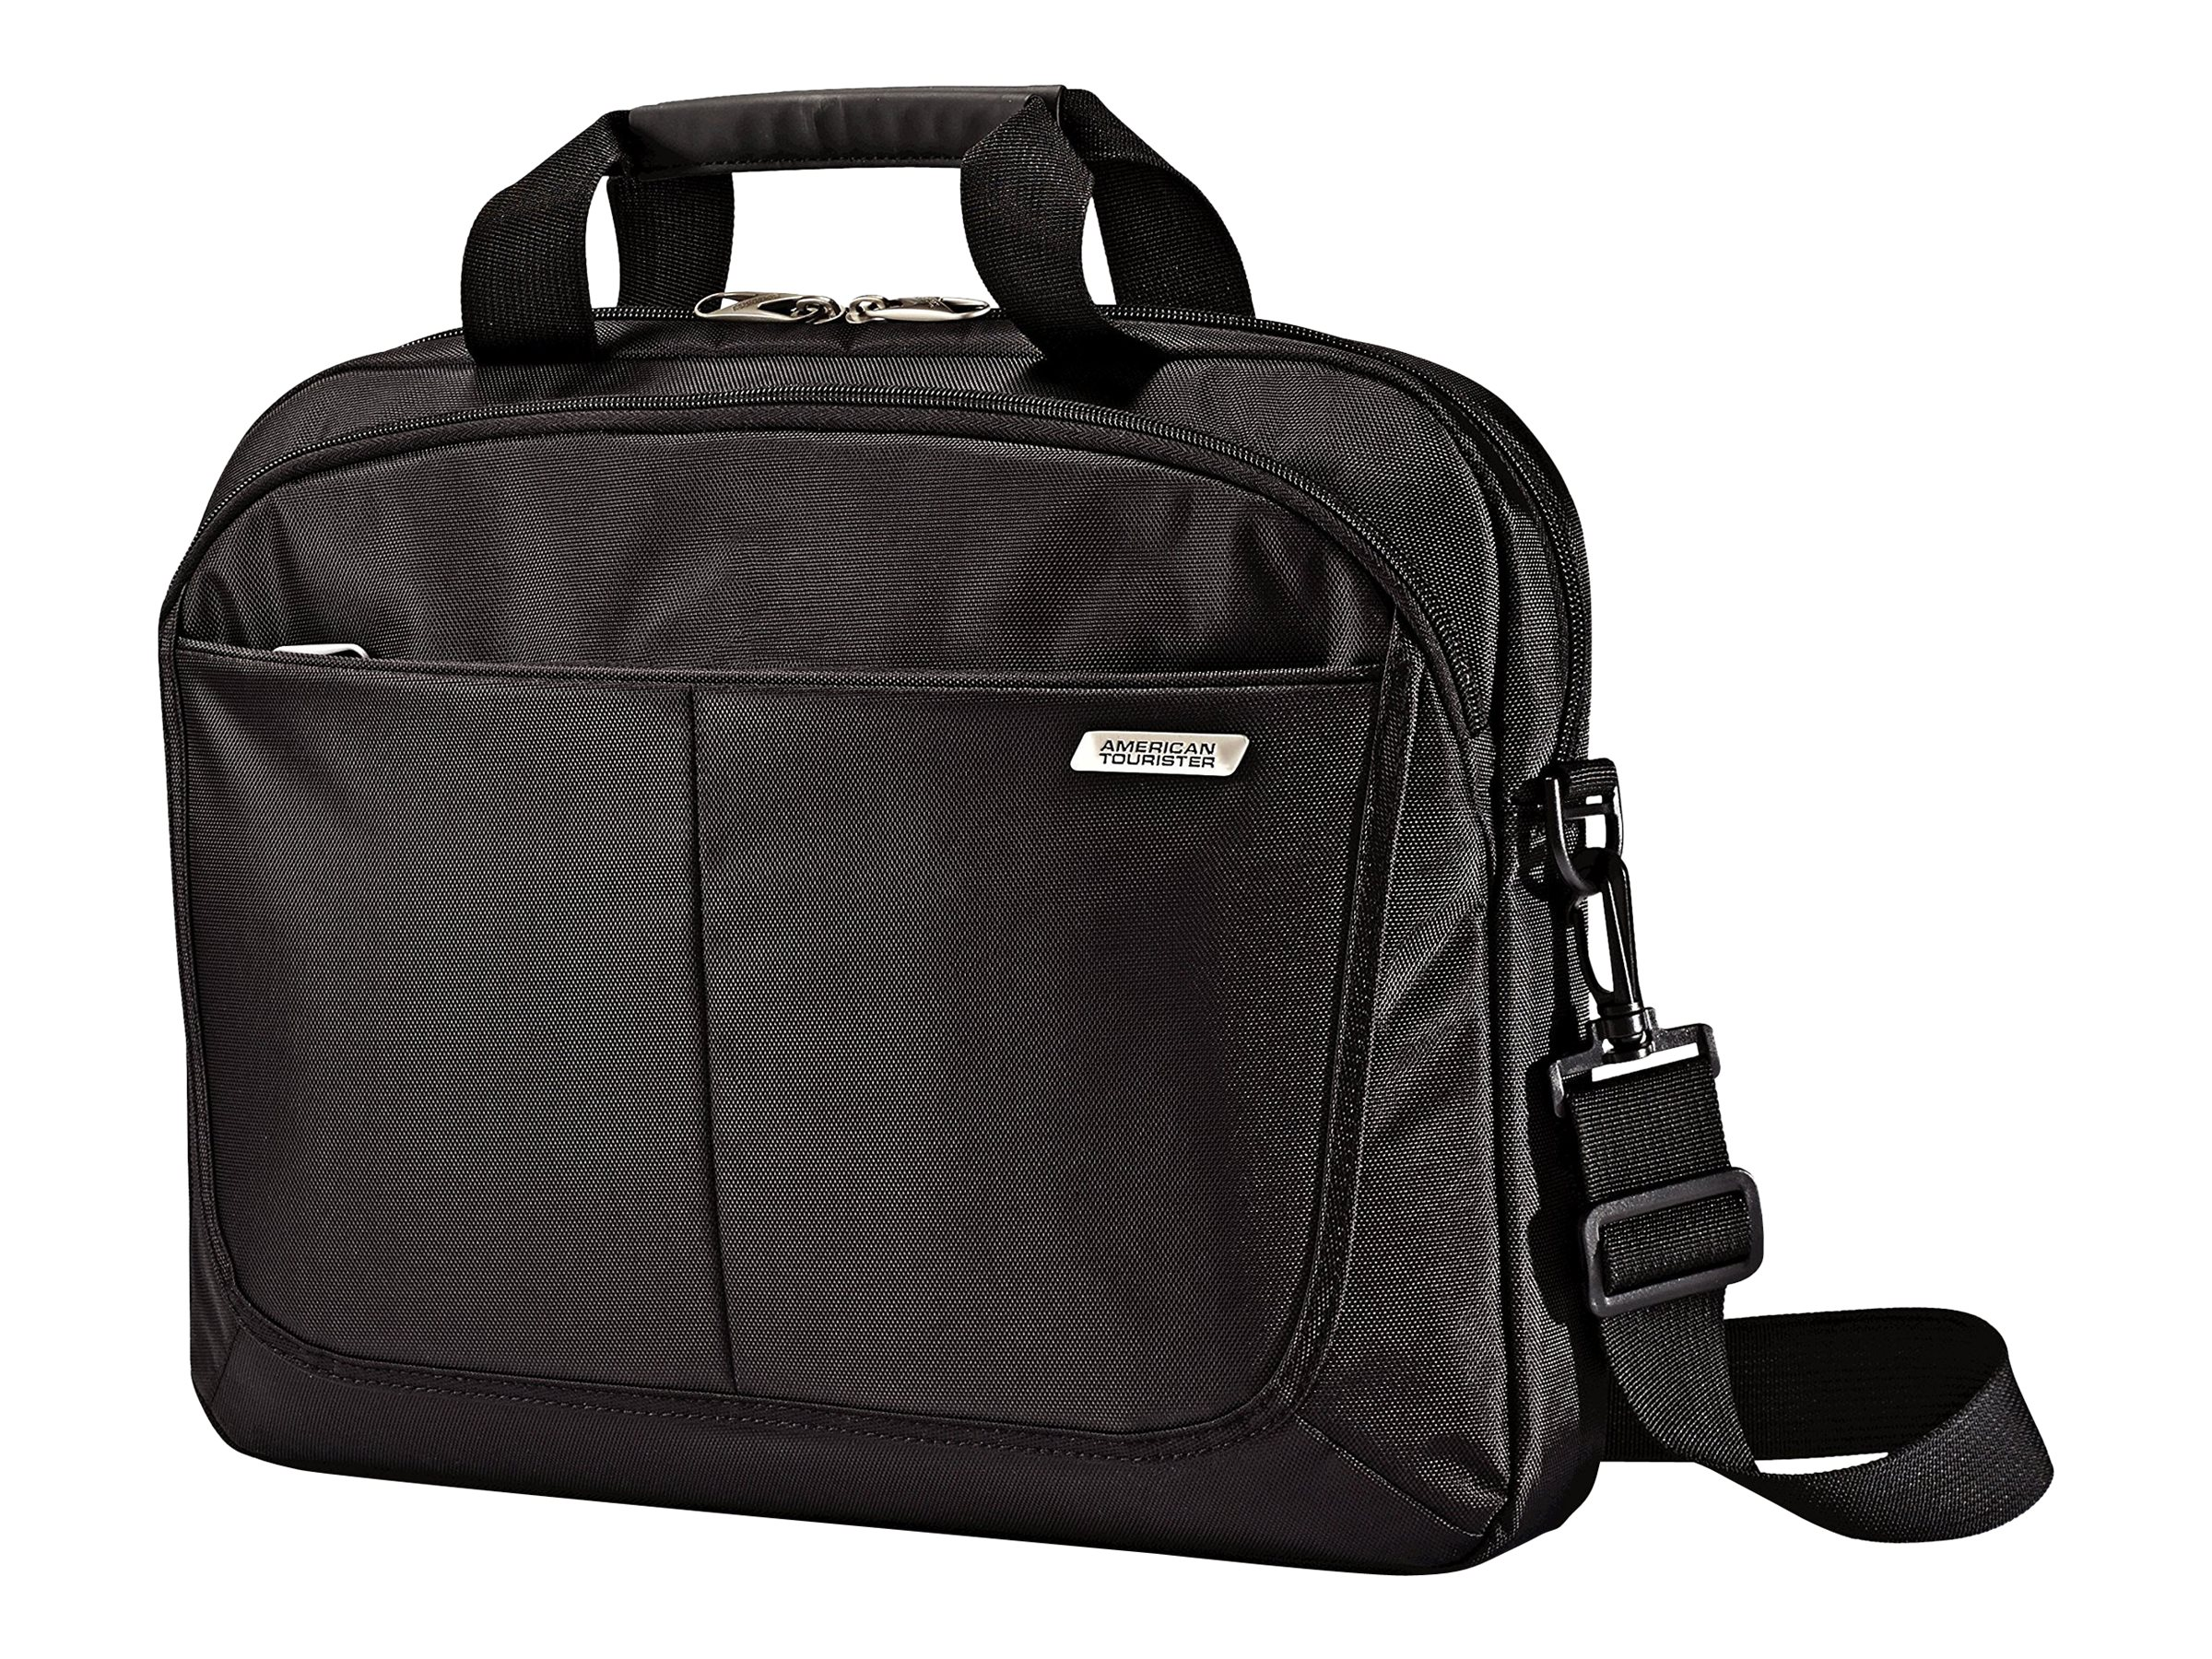 Stephen Gould 15.6 Slim Brief, Durable 840 Denier Construction, 61327-1041, 17770685, Carrying Cases - Other